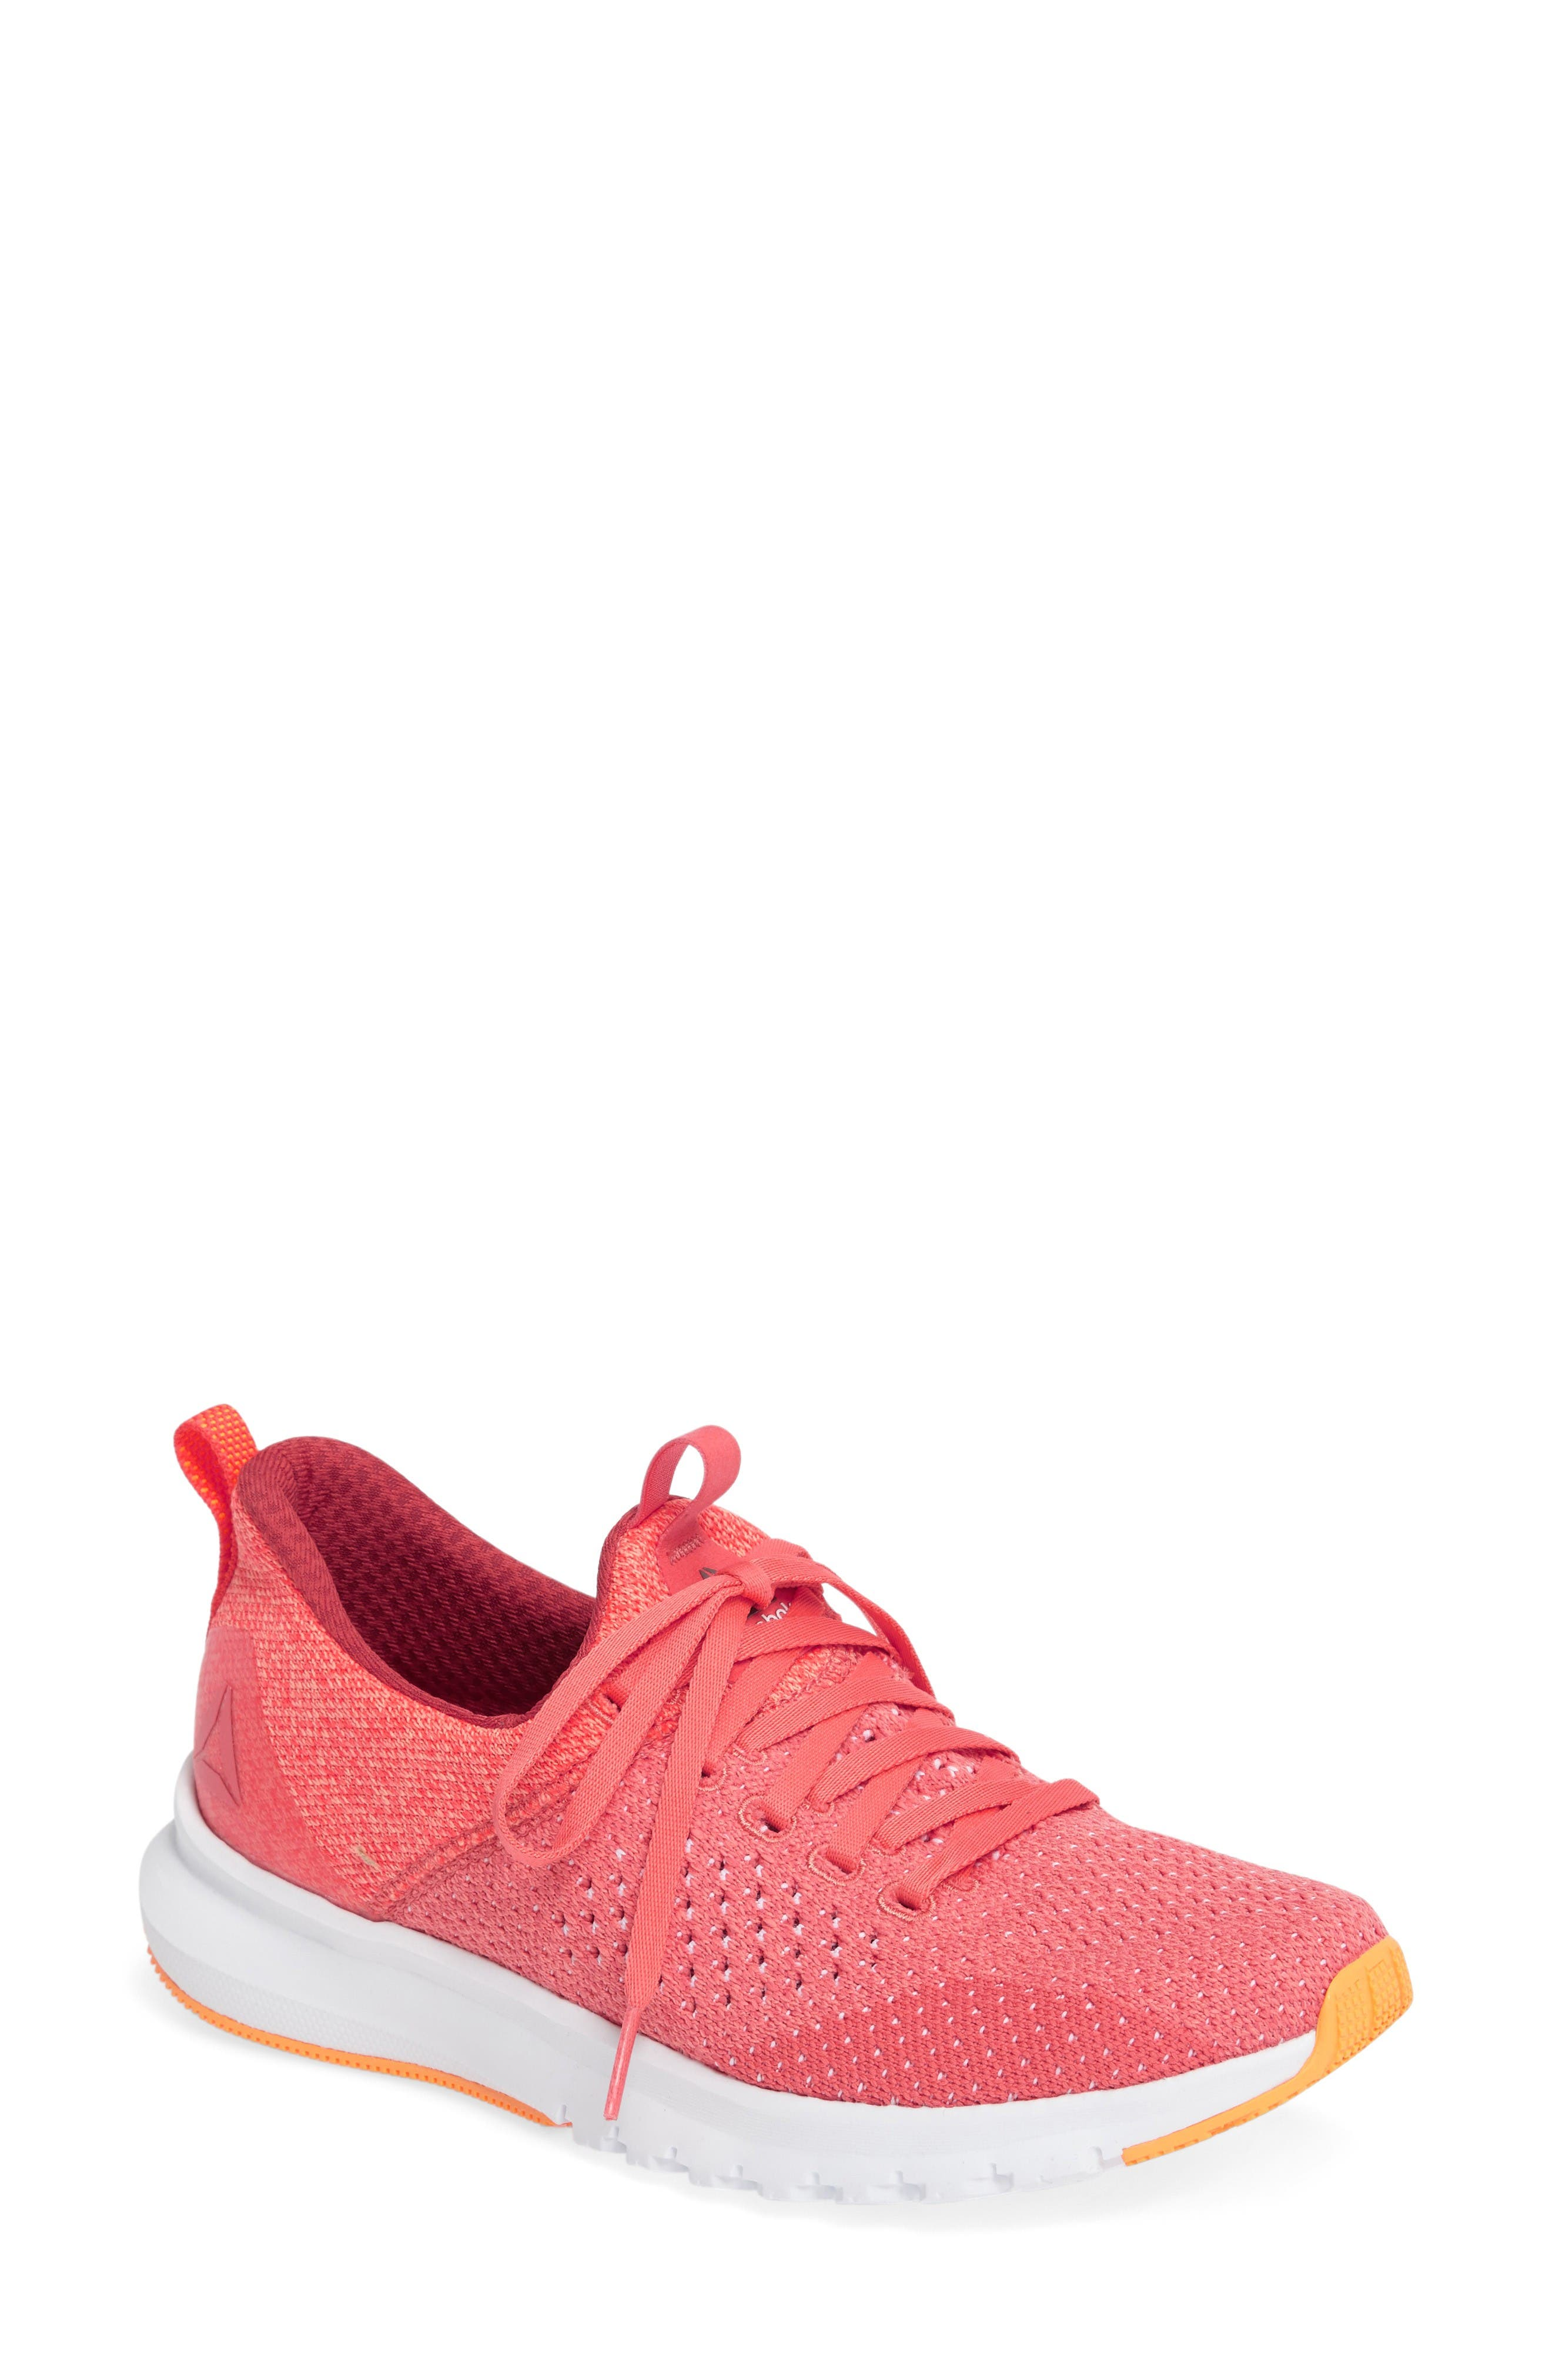 Reebok Print Elite ULTK Running Shoe (Women)